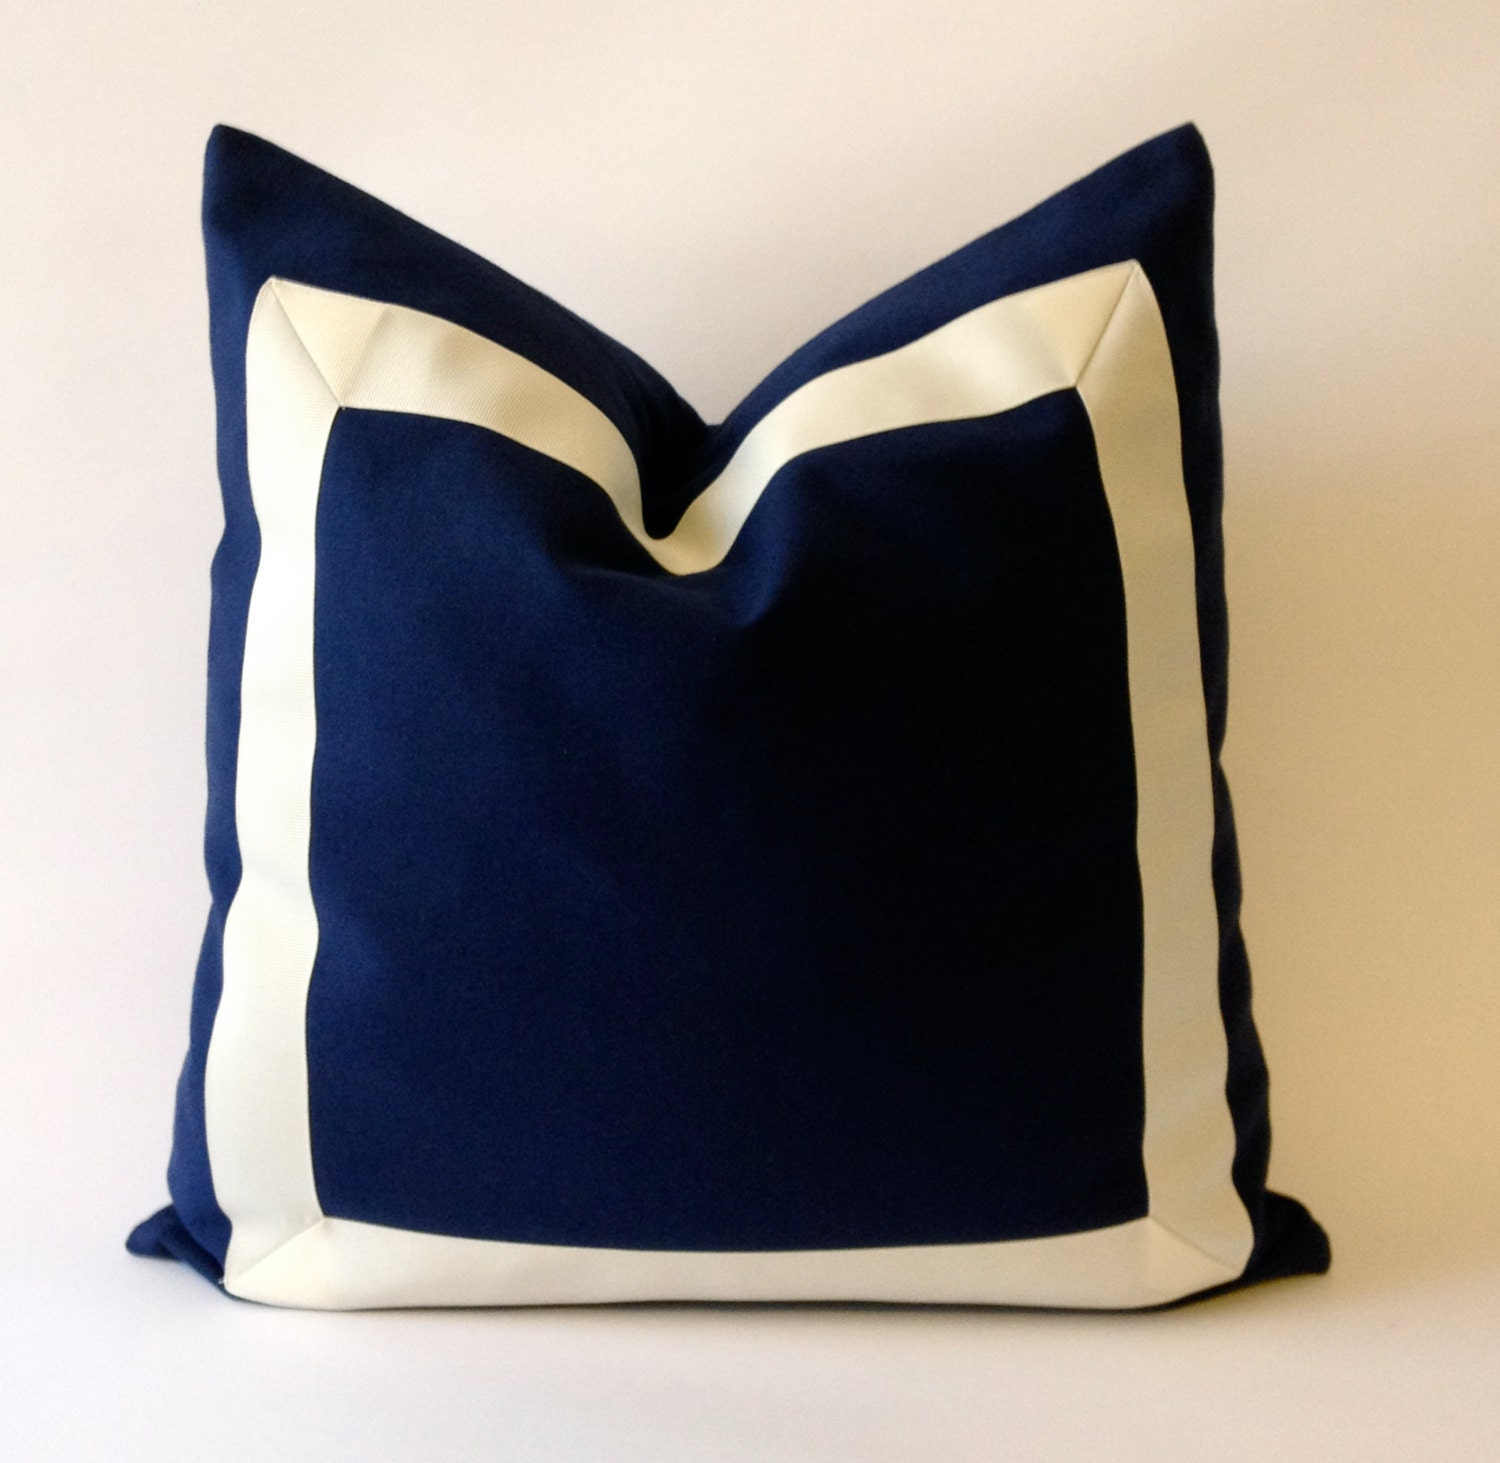 Navy Blue Throw Pillow Covers : Decorative Throw Pillow Cover in Navy Blue Cotton Canvas